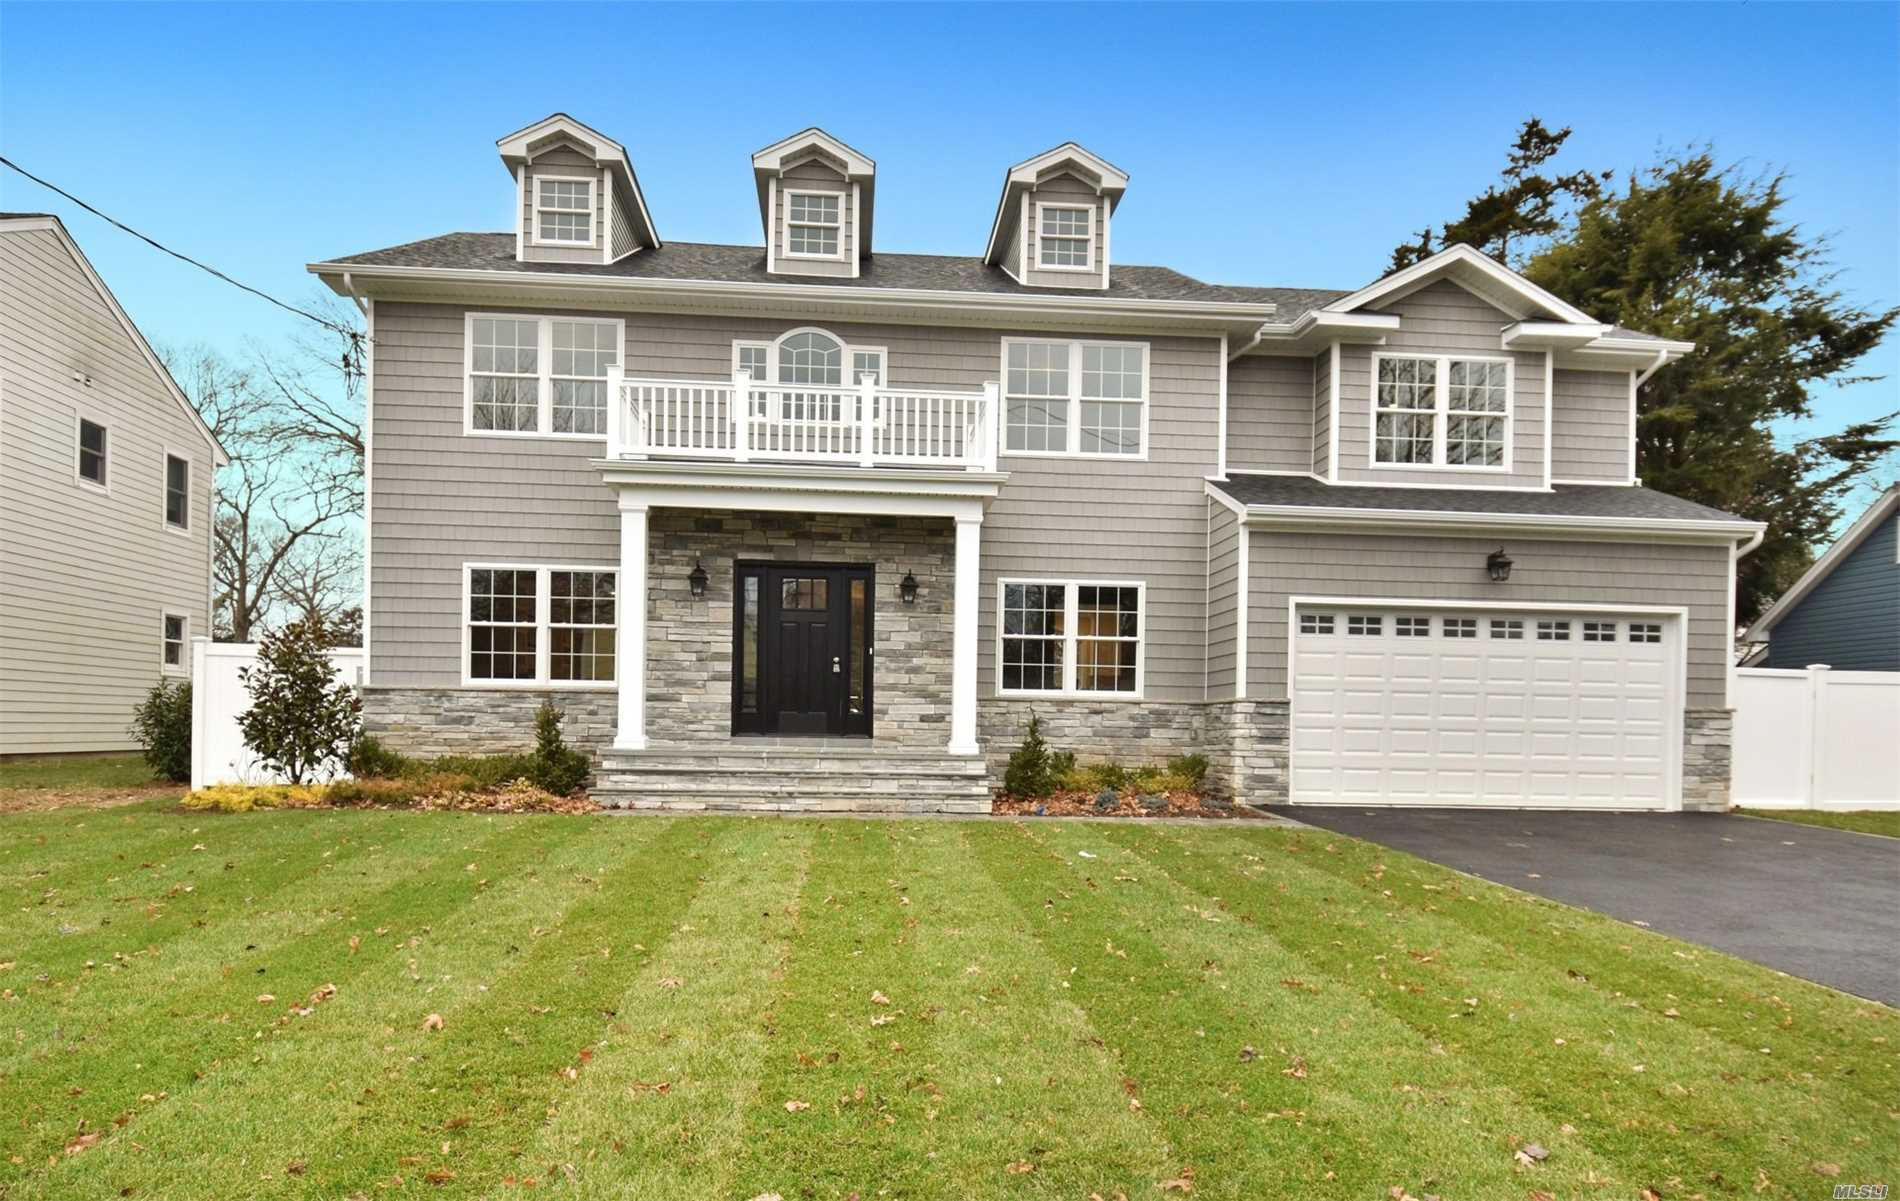 Spectacular Oversized, Park Like Property, North Syosset!! Stunning Sundrenched, 6 Bedroom, 4.5 Bath, Center Hall Colonial, North Syosset, Hw Floors, Gorgeous Gourmet Eik, Elaborate Trim Package, Stones Throw To Town, Rr, Village Elementary. Interior Furnished Photos Are Of A Similar Home Not 8 Anita.